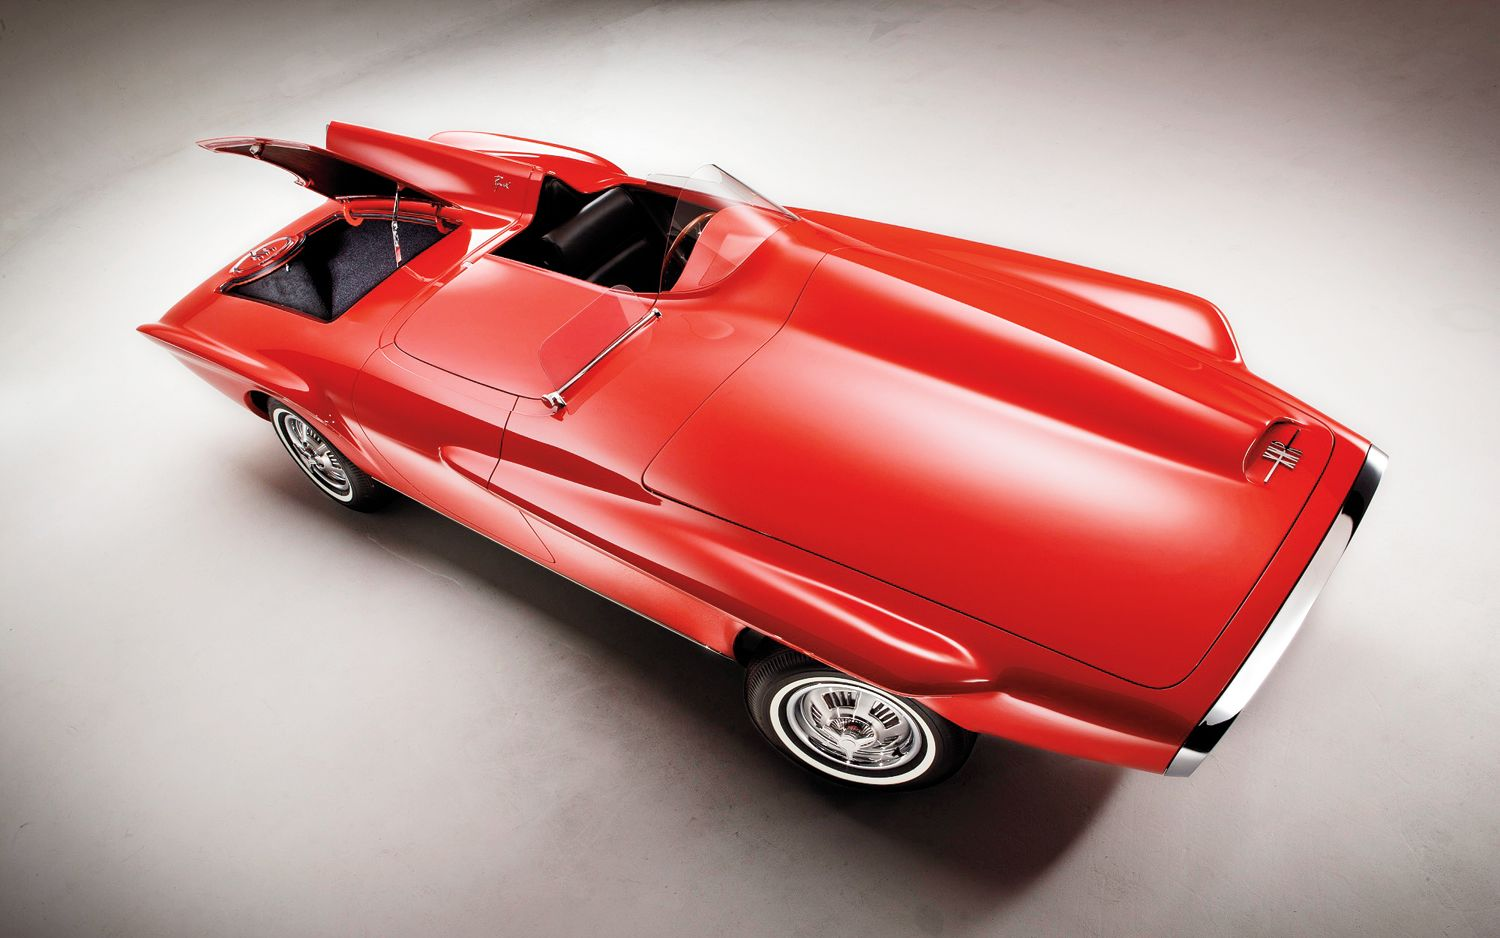 1960 automotive | 1960 Plymouth XNR Concept Car Top View Photo 6 ...